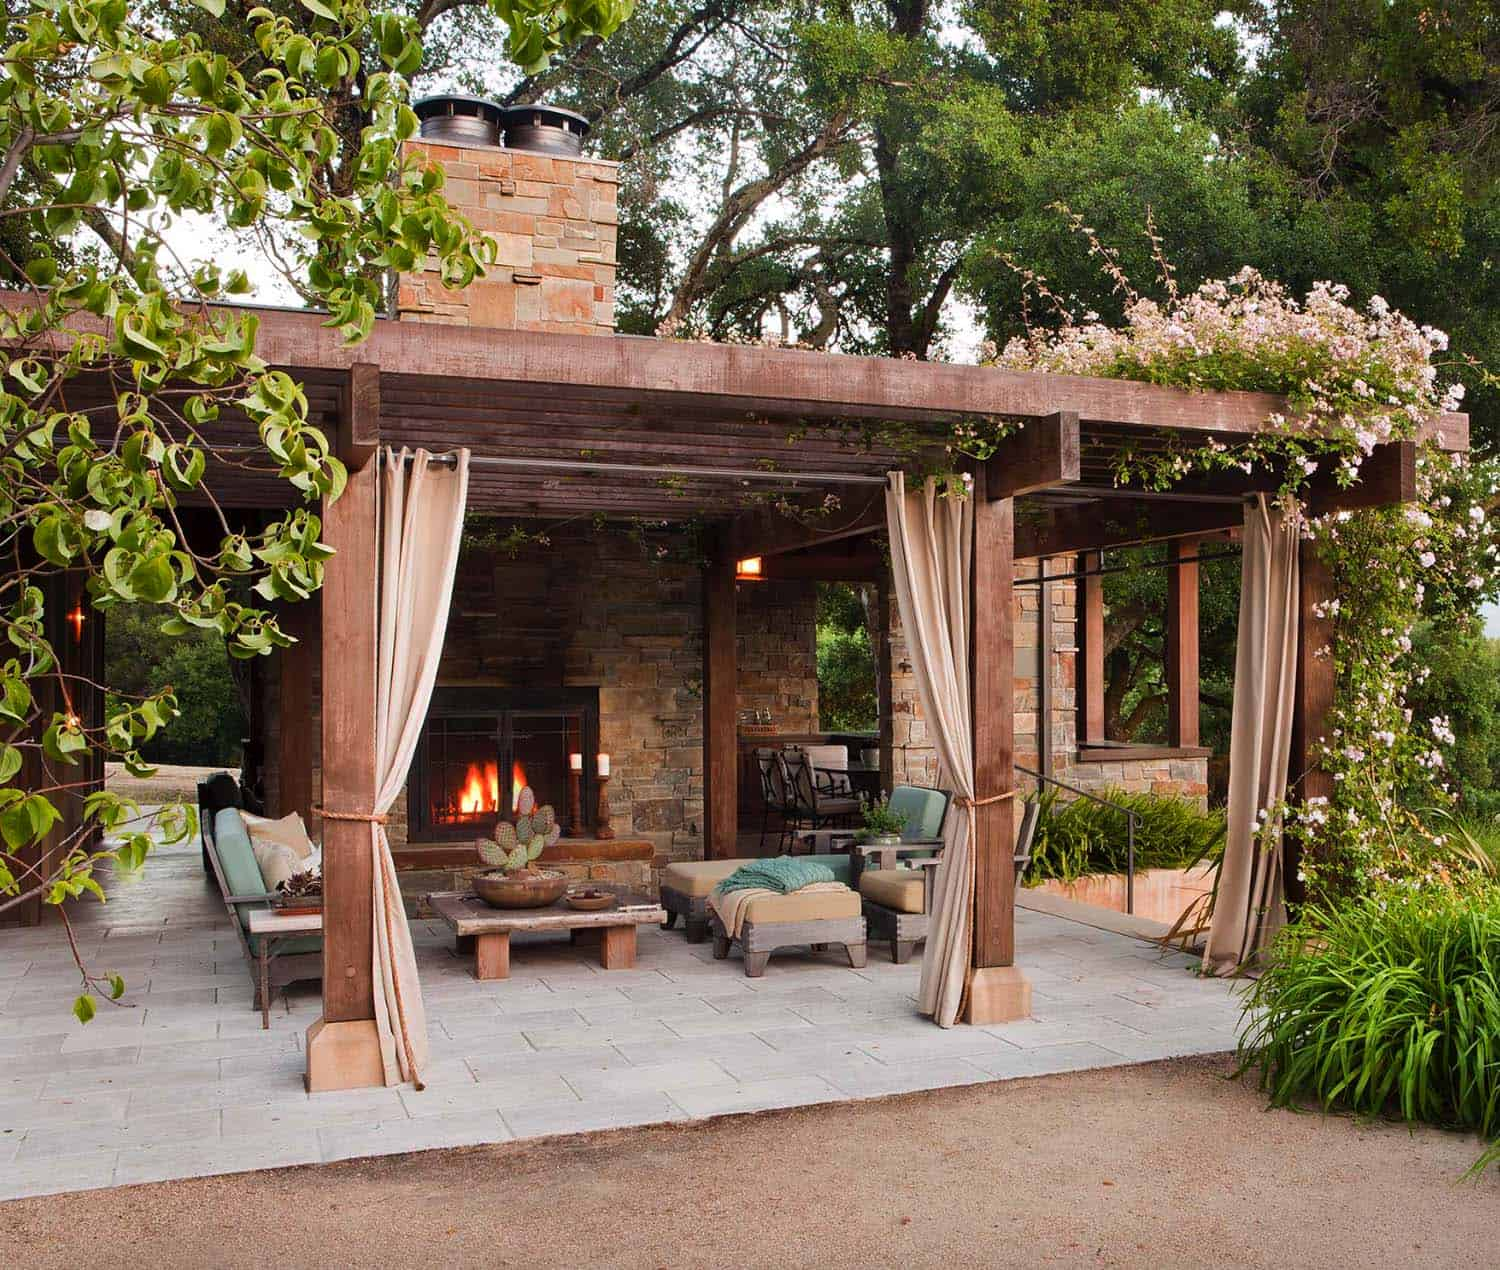 30+ Irresistible outdoor fireplace ideas that will leave ... on Outdoor Kitchen And Fireplace Ideas id=91794